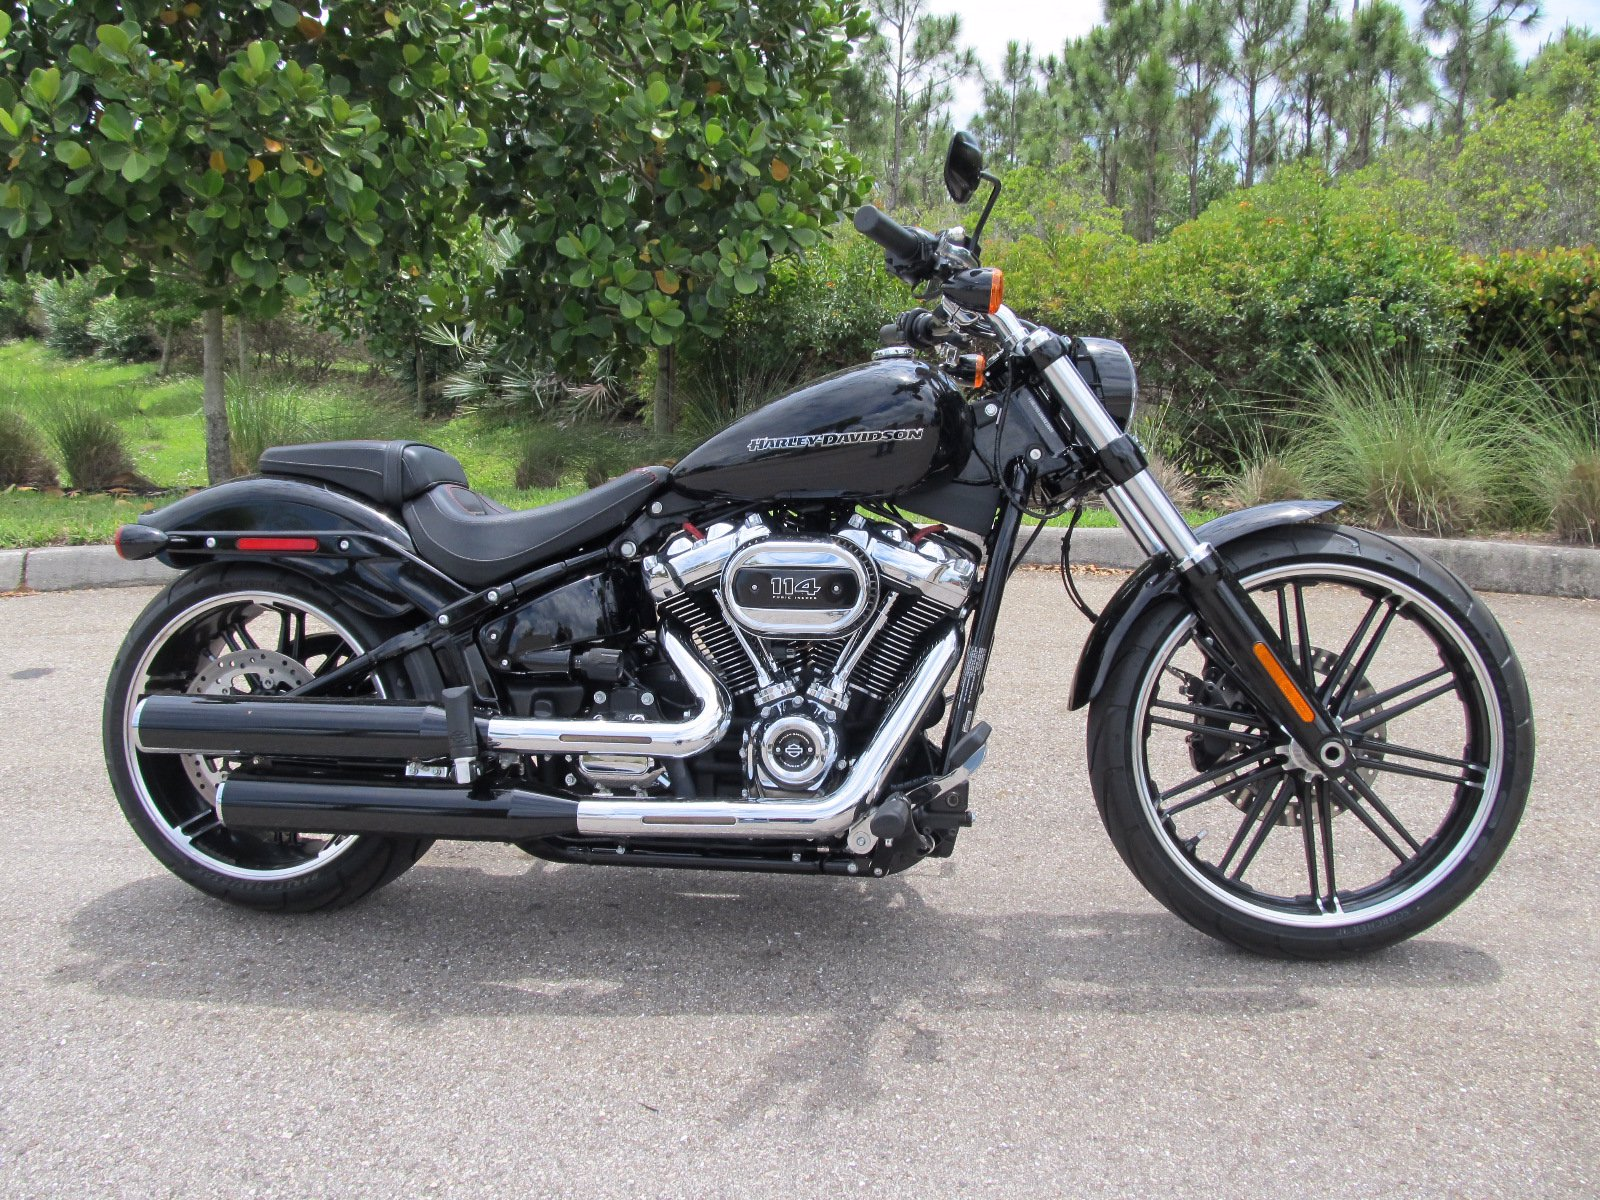 Pre-Owned 2019 Harley-Davidson Softail Breakout 114 FXBRS ...